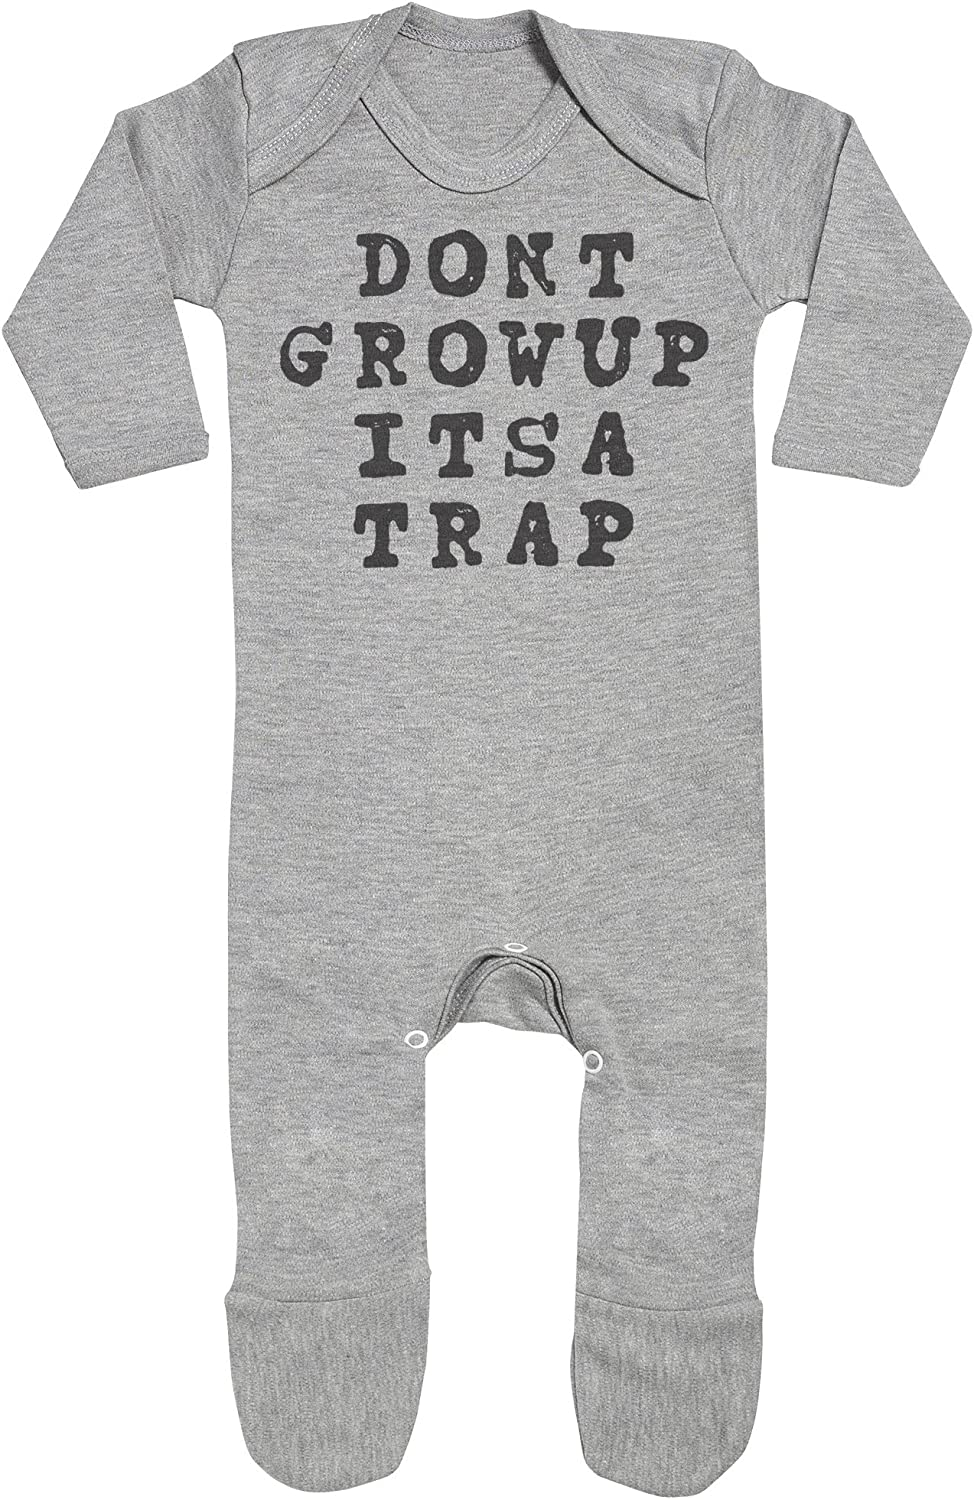 Baby Footie Baby Romper Dont Grow Up Baby Rompersuit SR